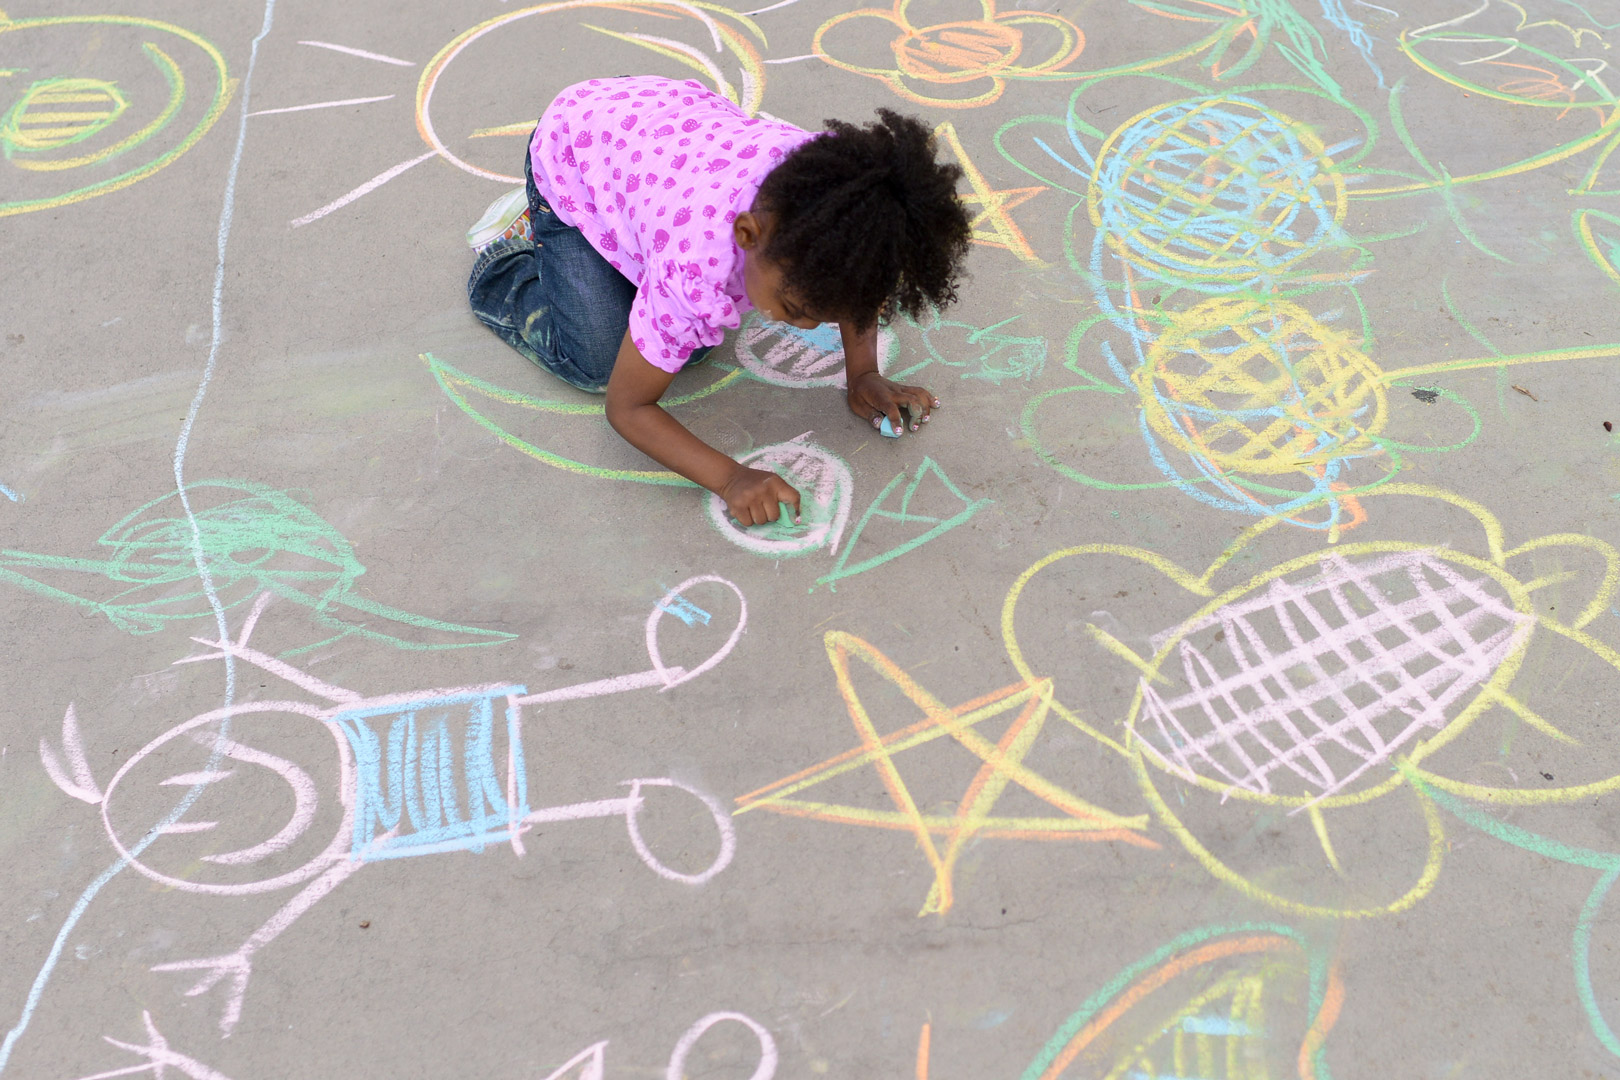 Play Matters - Girl draws on sidewalk with chalk